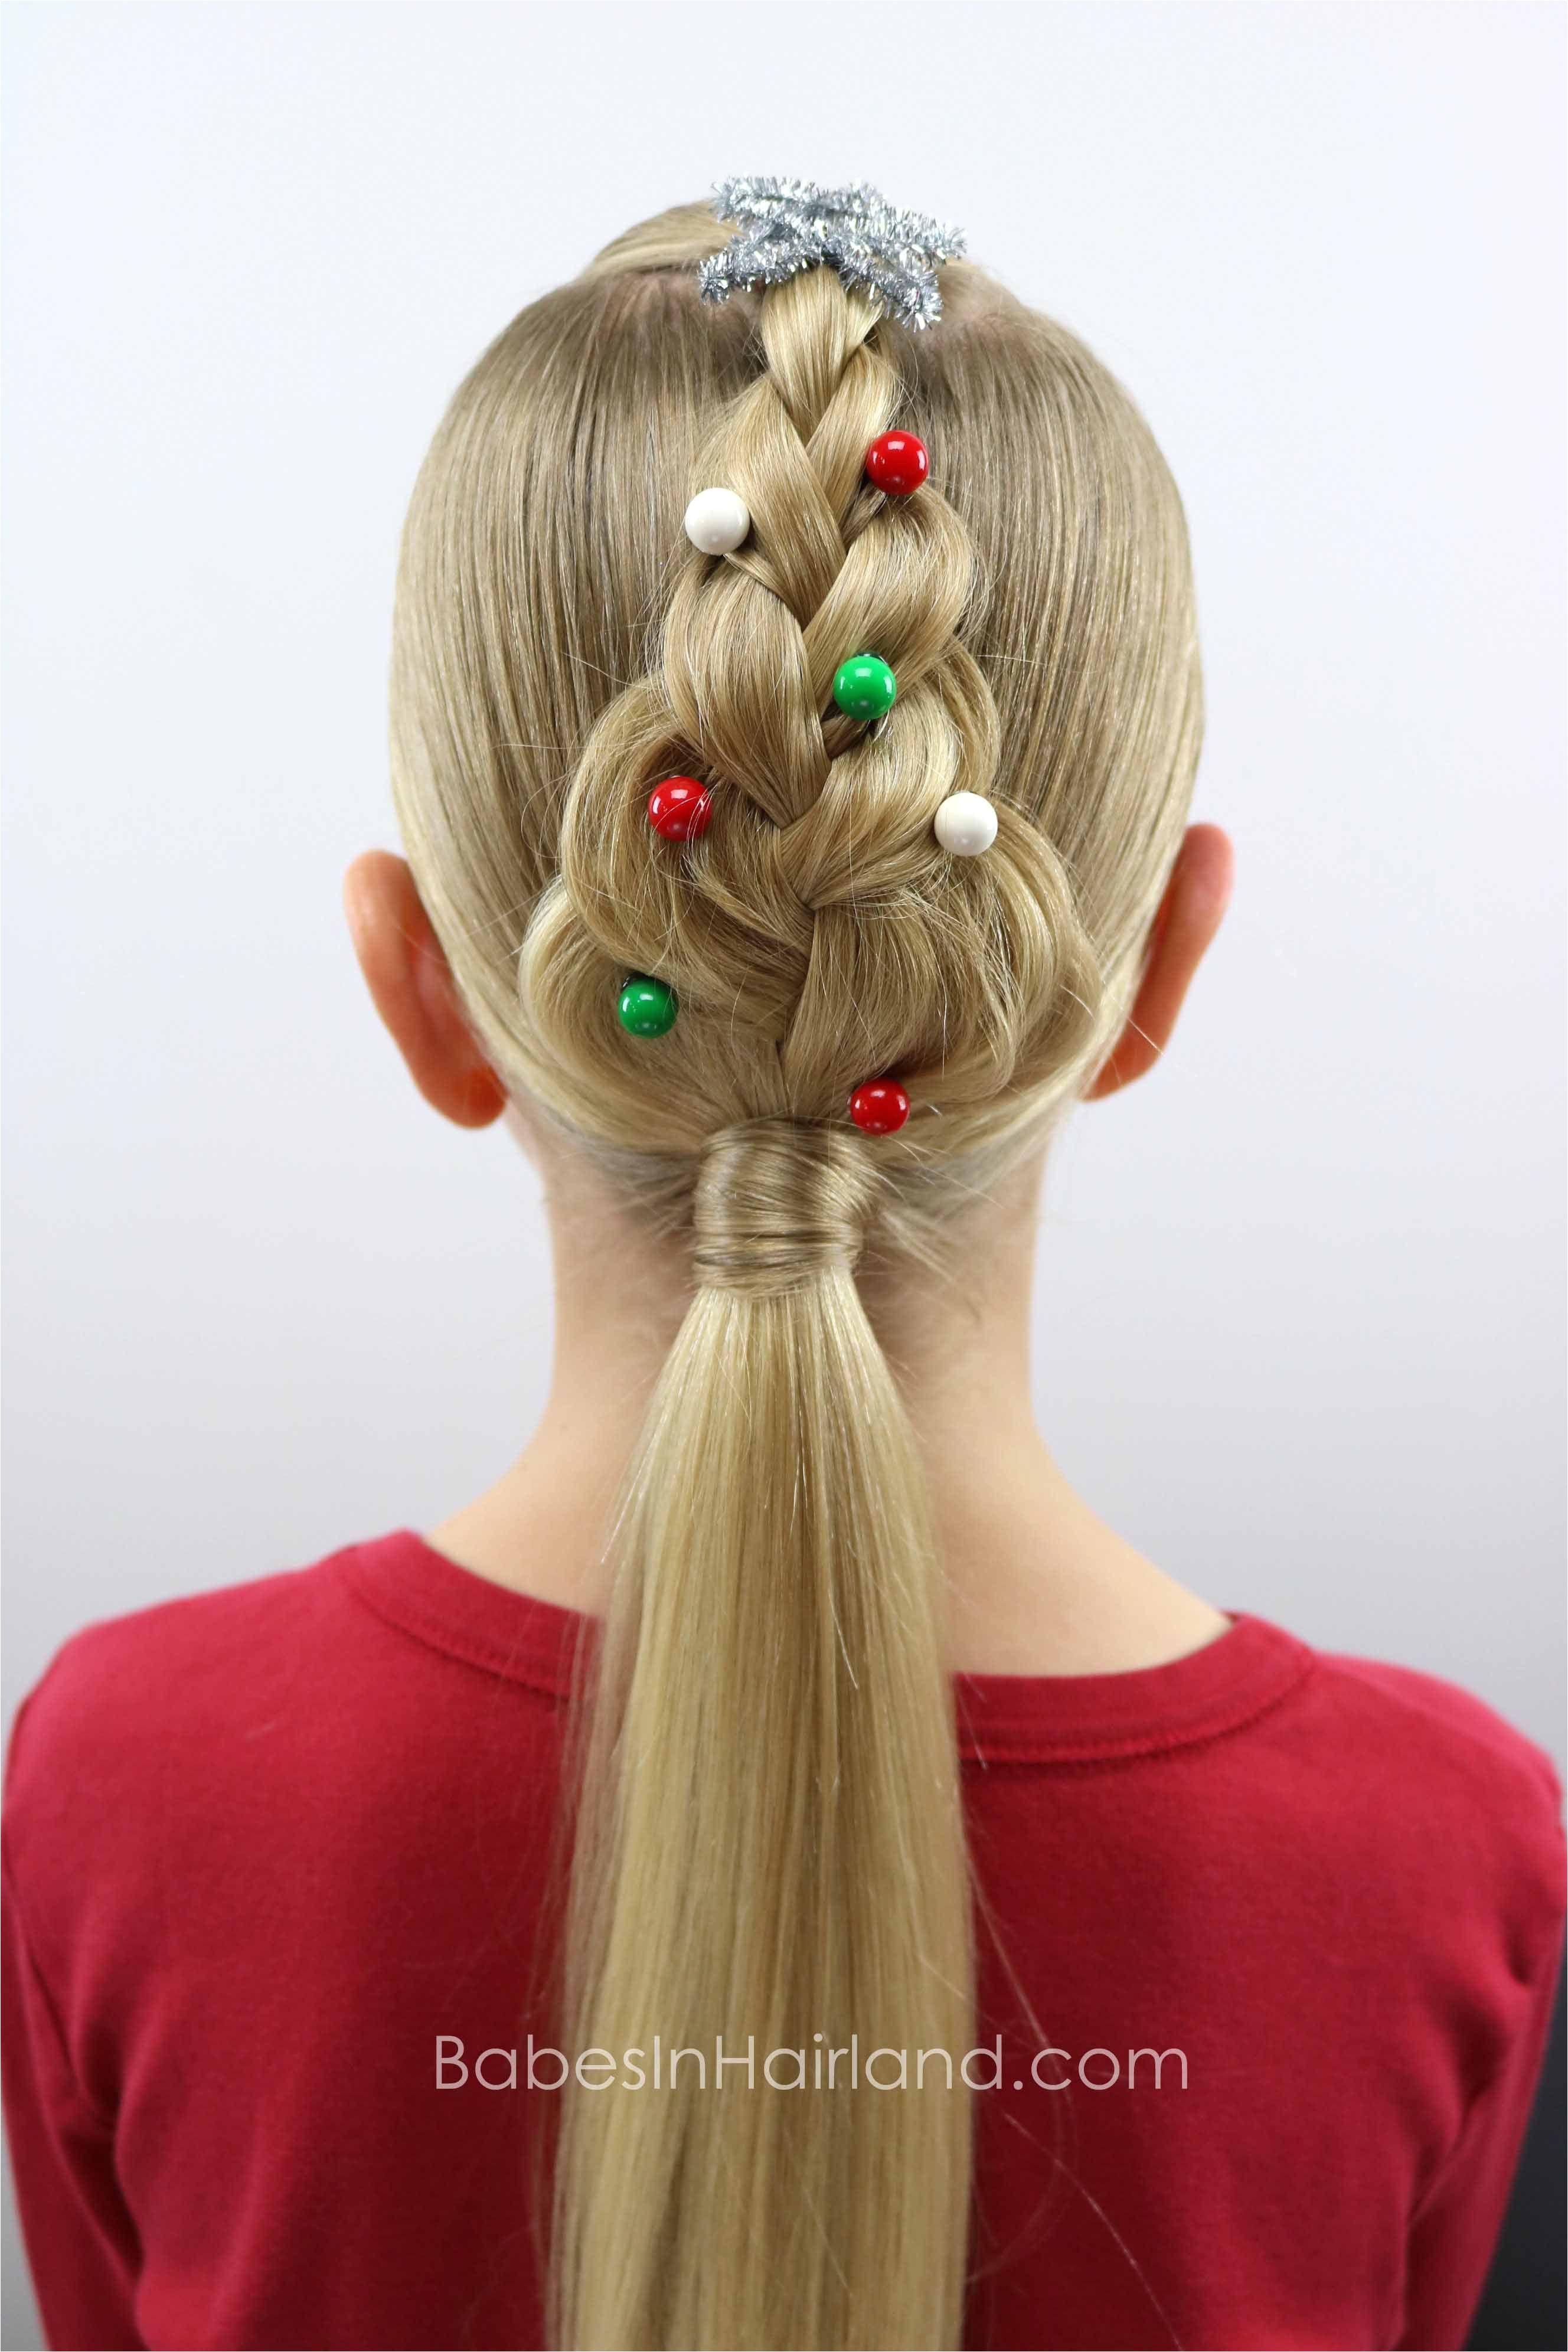 For an easy Christmas hairstyle try this cute Christmas Tree Braid from BabesInHairland hair braids hairstyle easy hairstyle